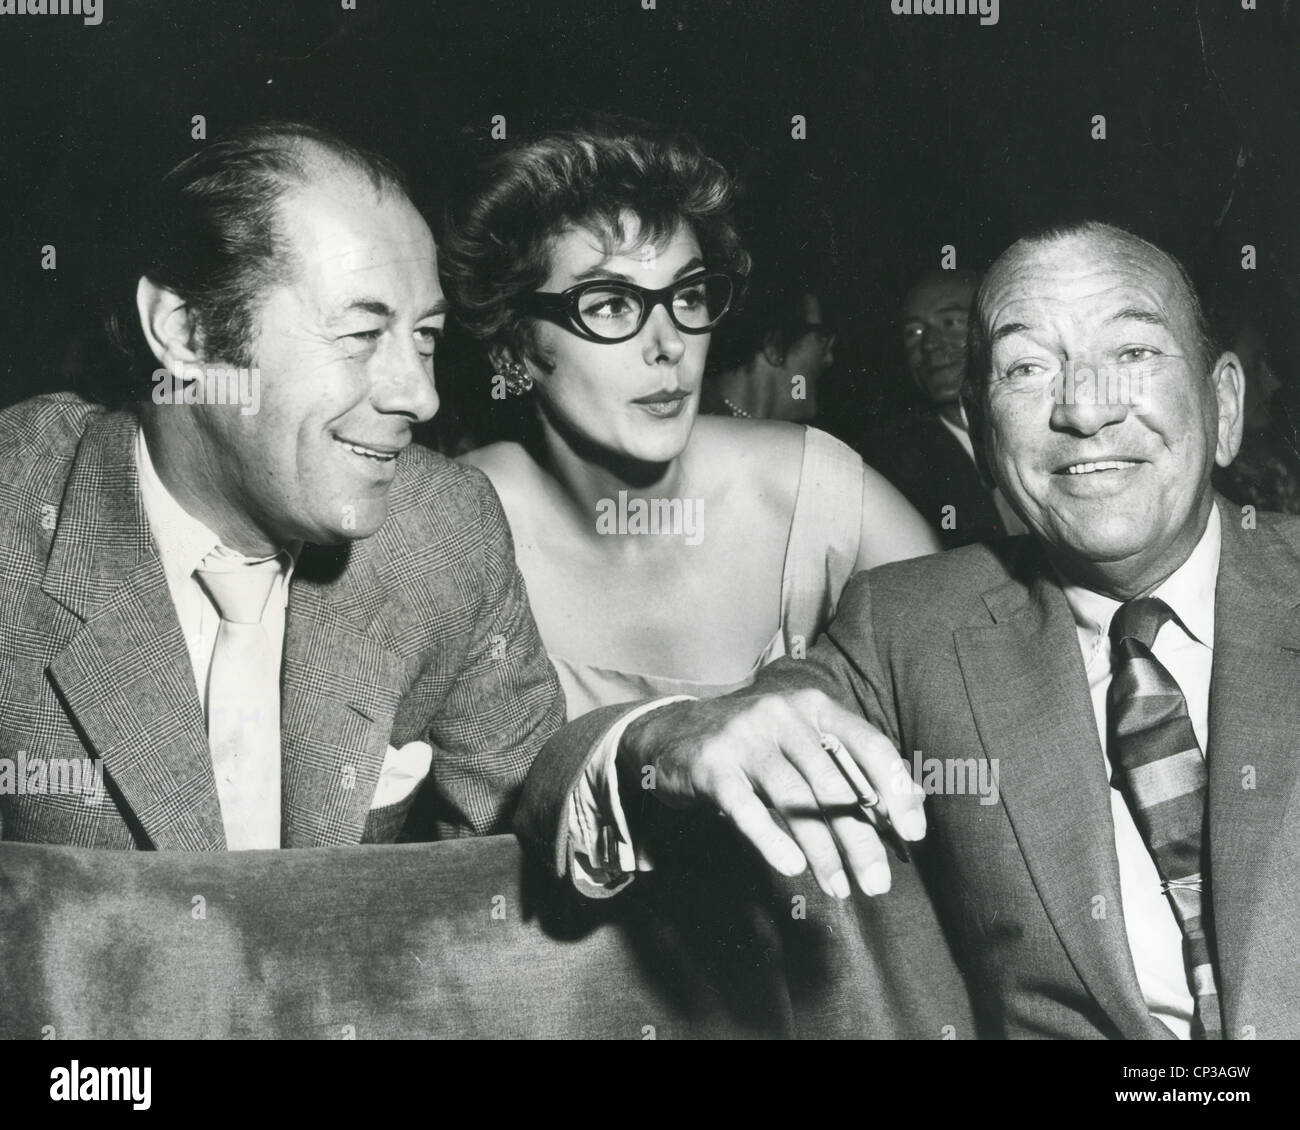 REX HARRISON at left with Kay Kendall and Noel Coward at the Night of 100 Stars in April 1973 - Stock Image